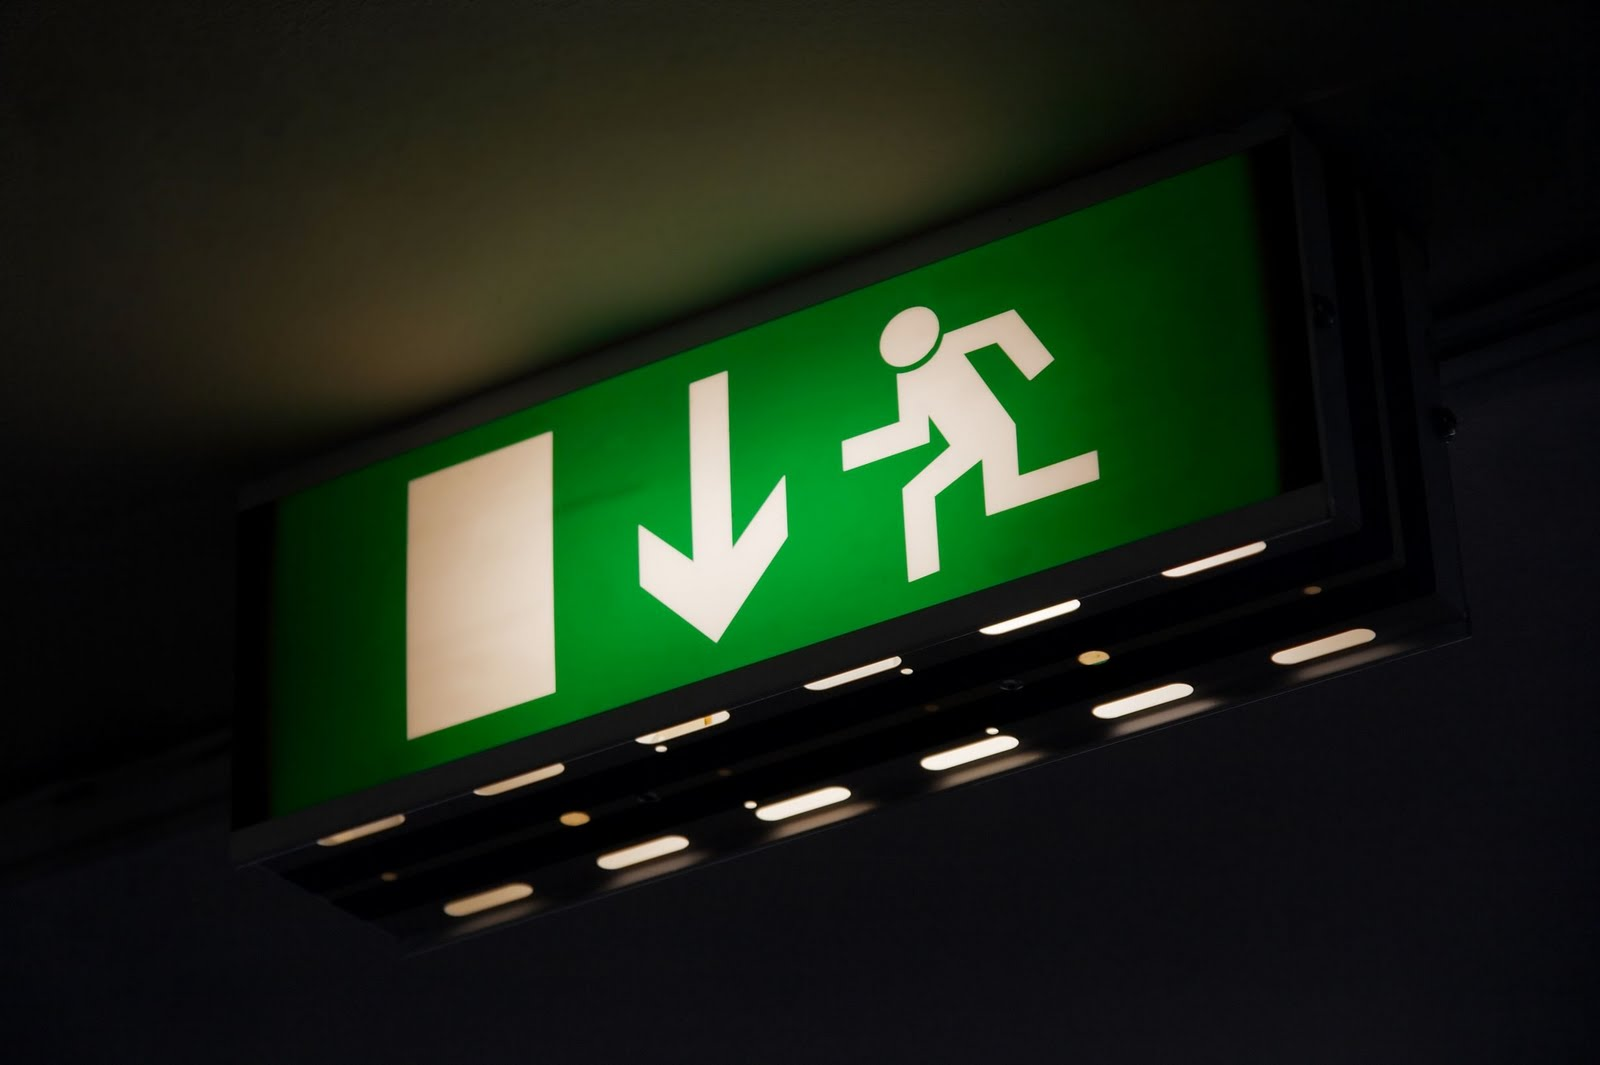 Alectric - Exit & Emergency Lighting in Adelaide